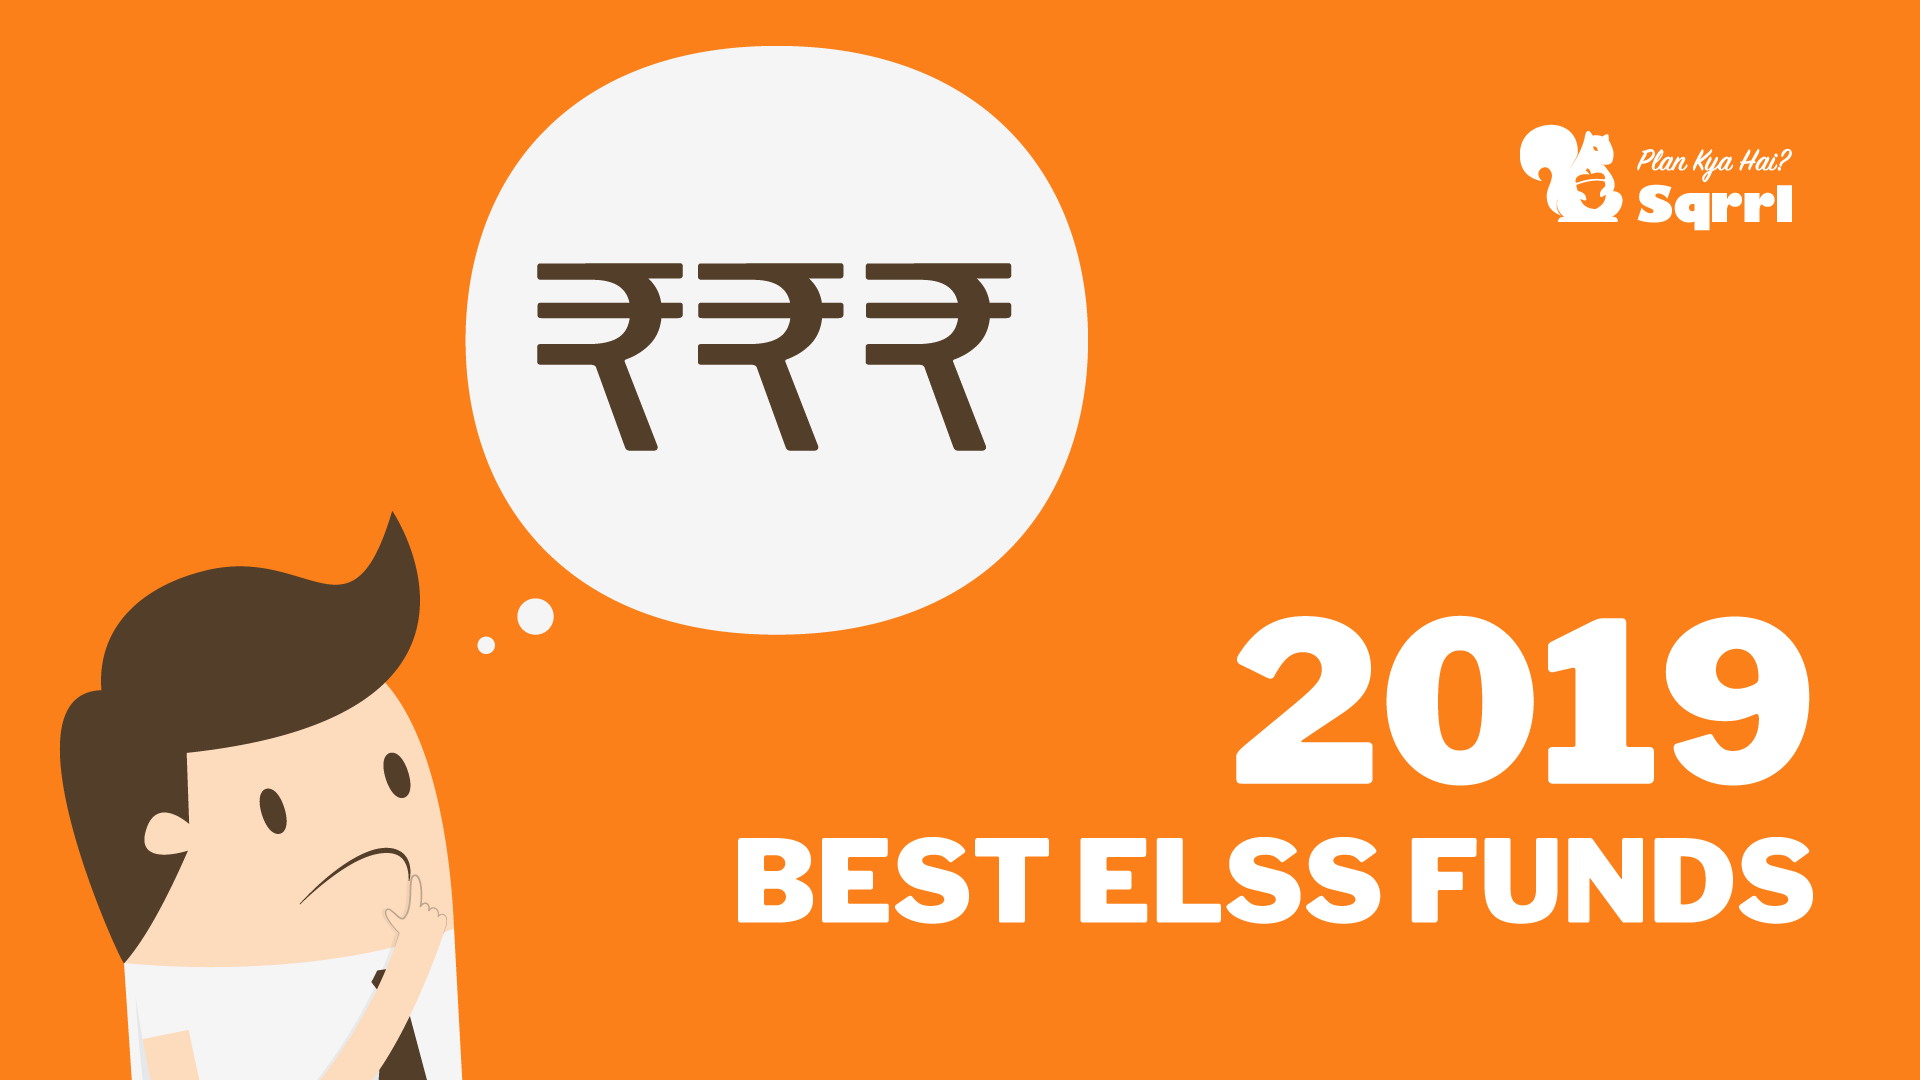 best elss funds to invest in 2019